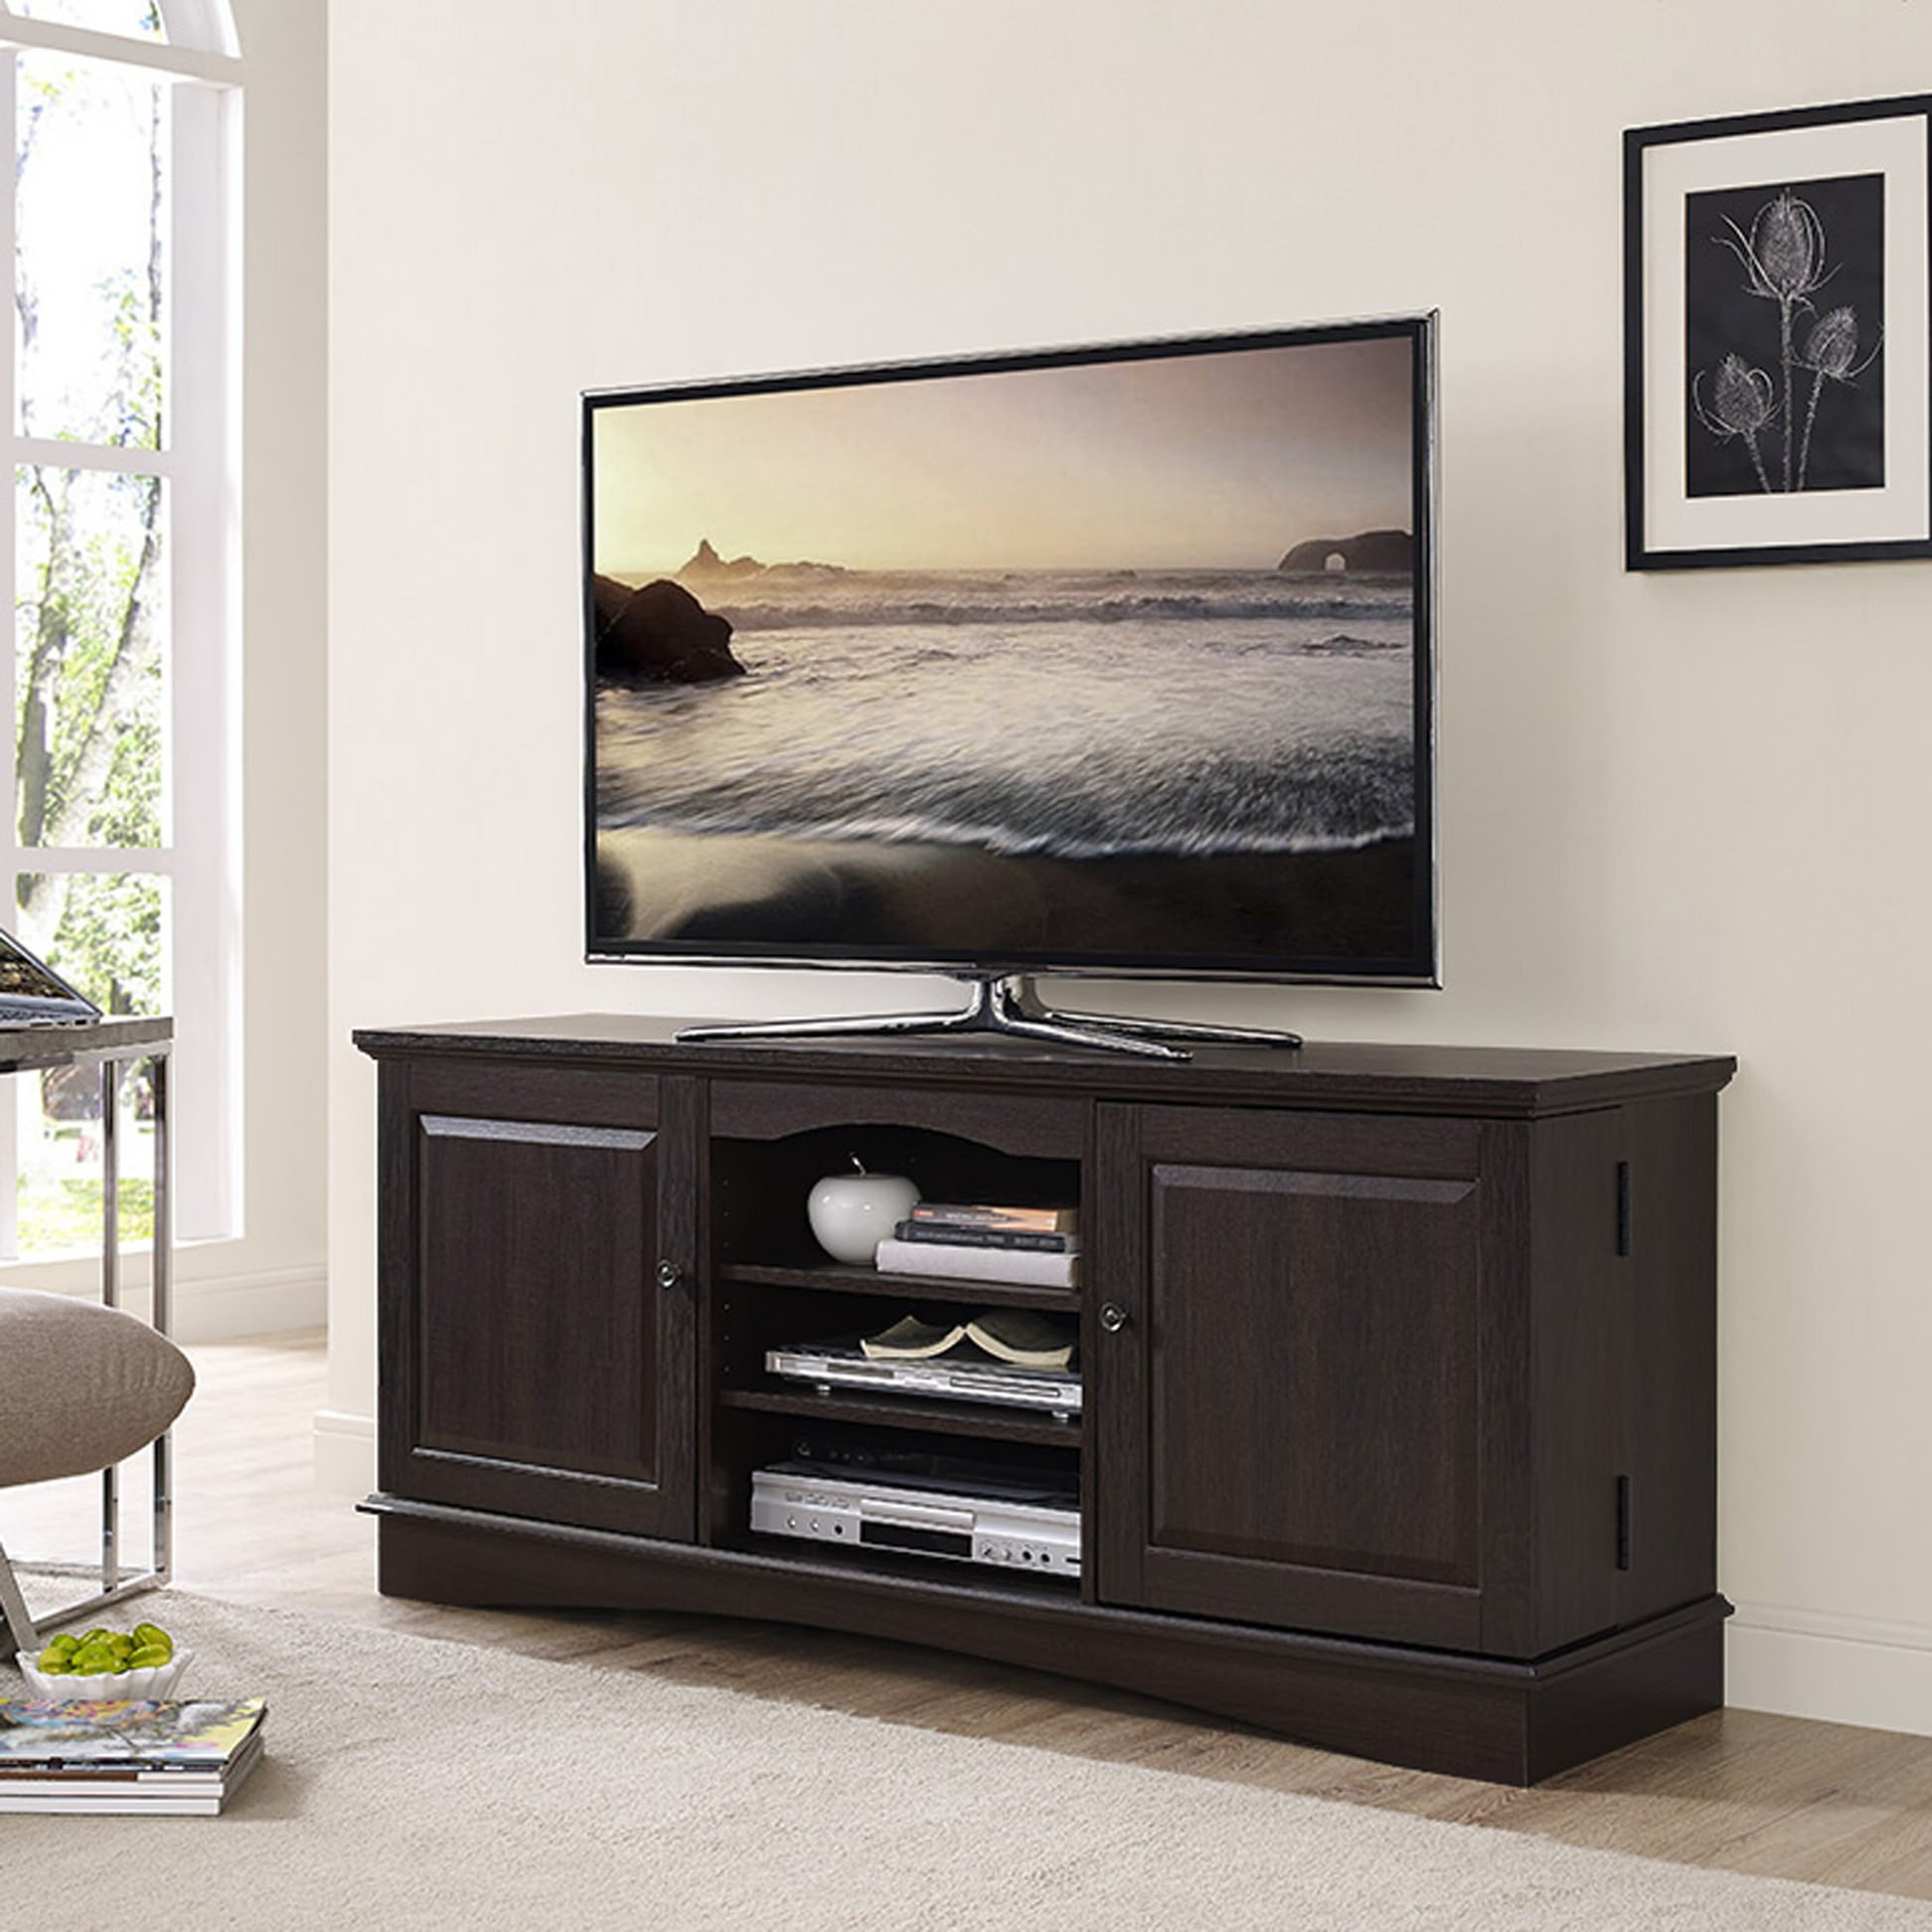 """Well Known 60 Inch Espresso Wood Tv Standwalker Edison With Regard To Adayah Tv Stands For Tvs Up To 60"""" (View 2 of 25)"""